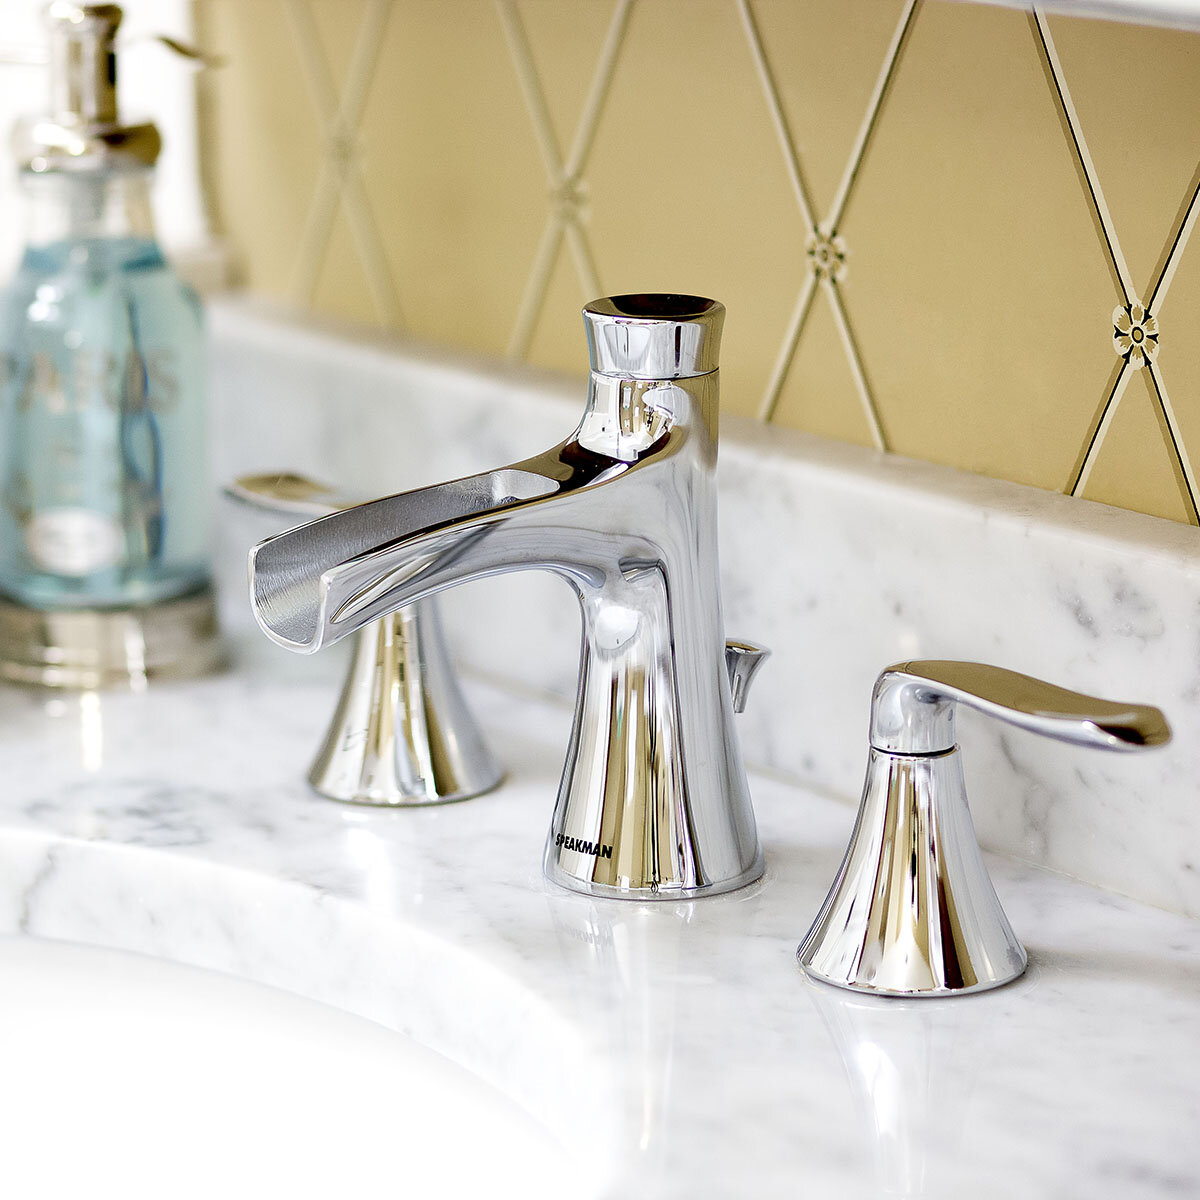 era valves speakman shower faucets this s not house kent faucet old